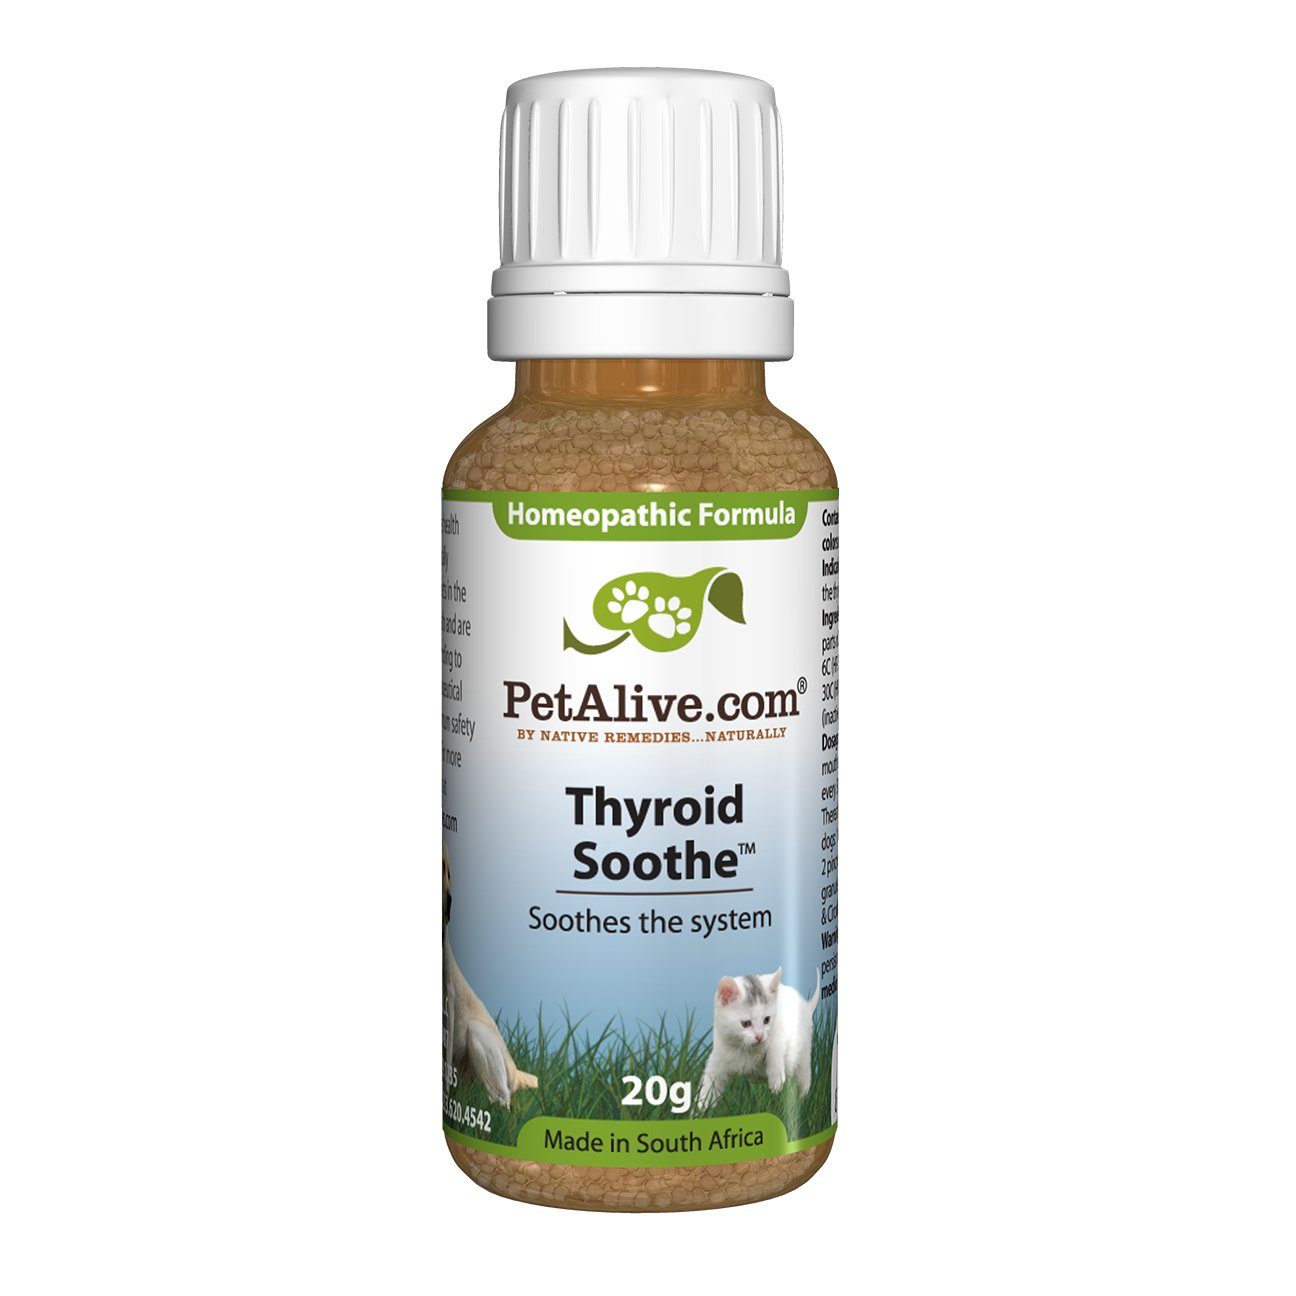 PetAlive Thyroid Soothe